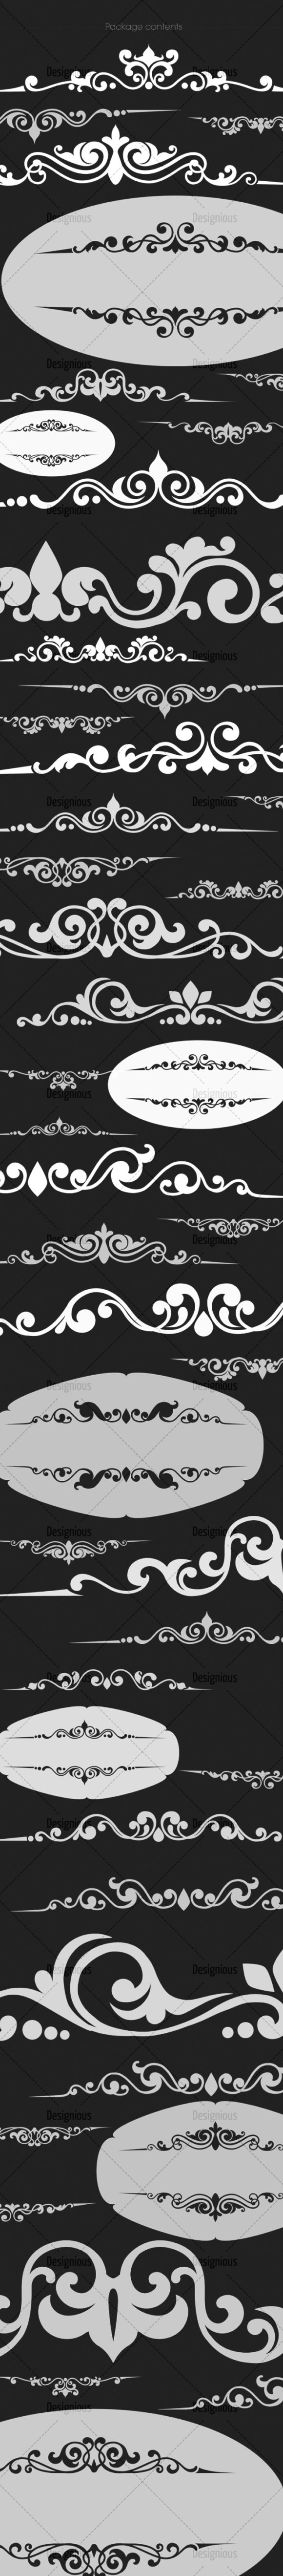 Ornamental Floral Brushes Pack 56 Floral brushes [tag]